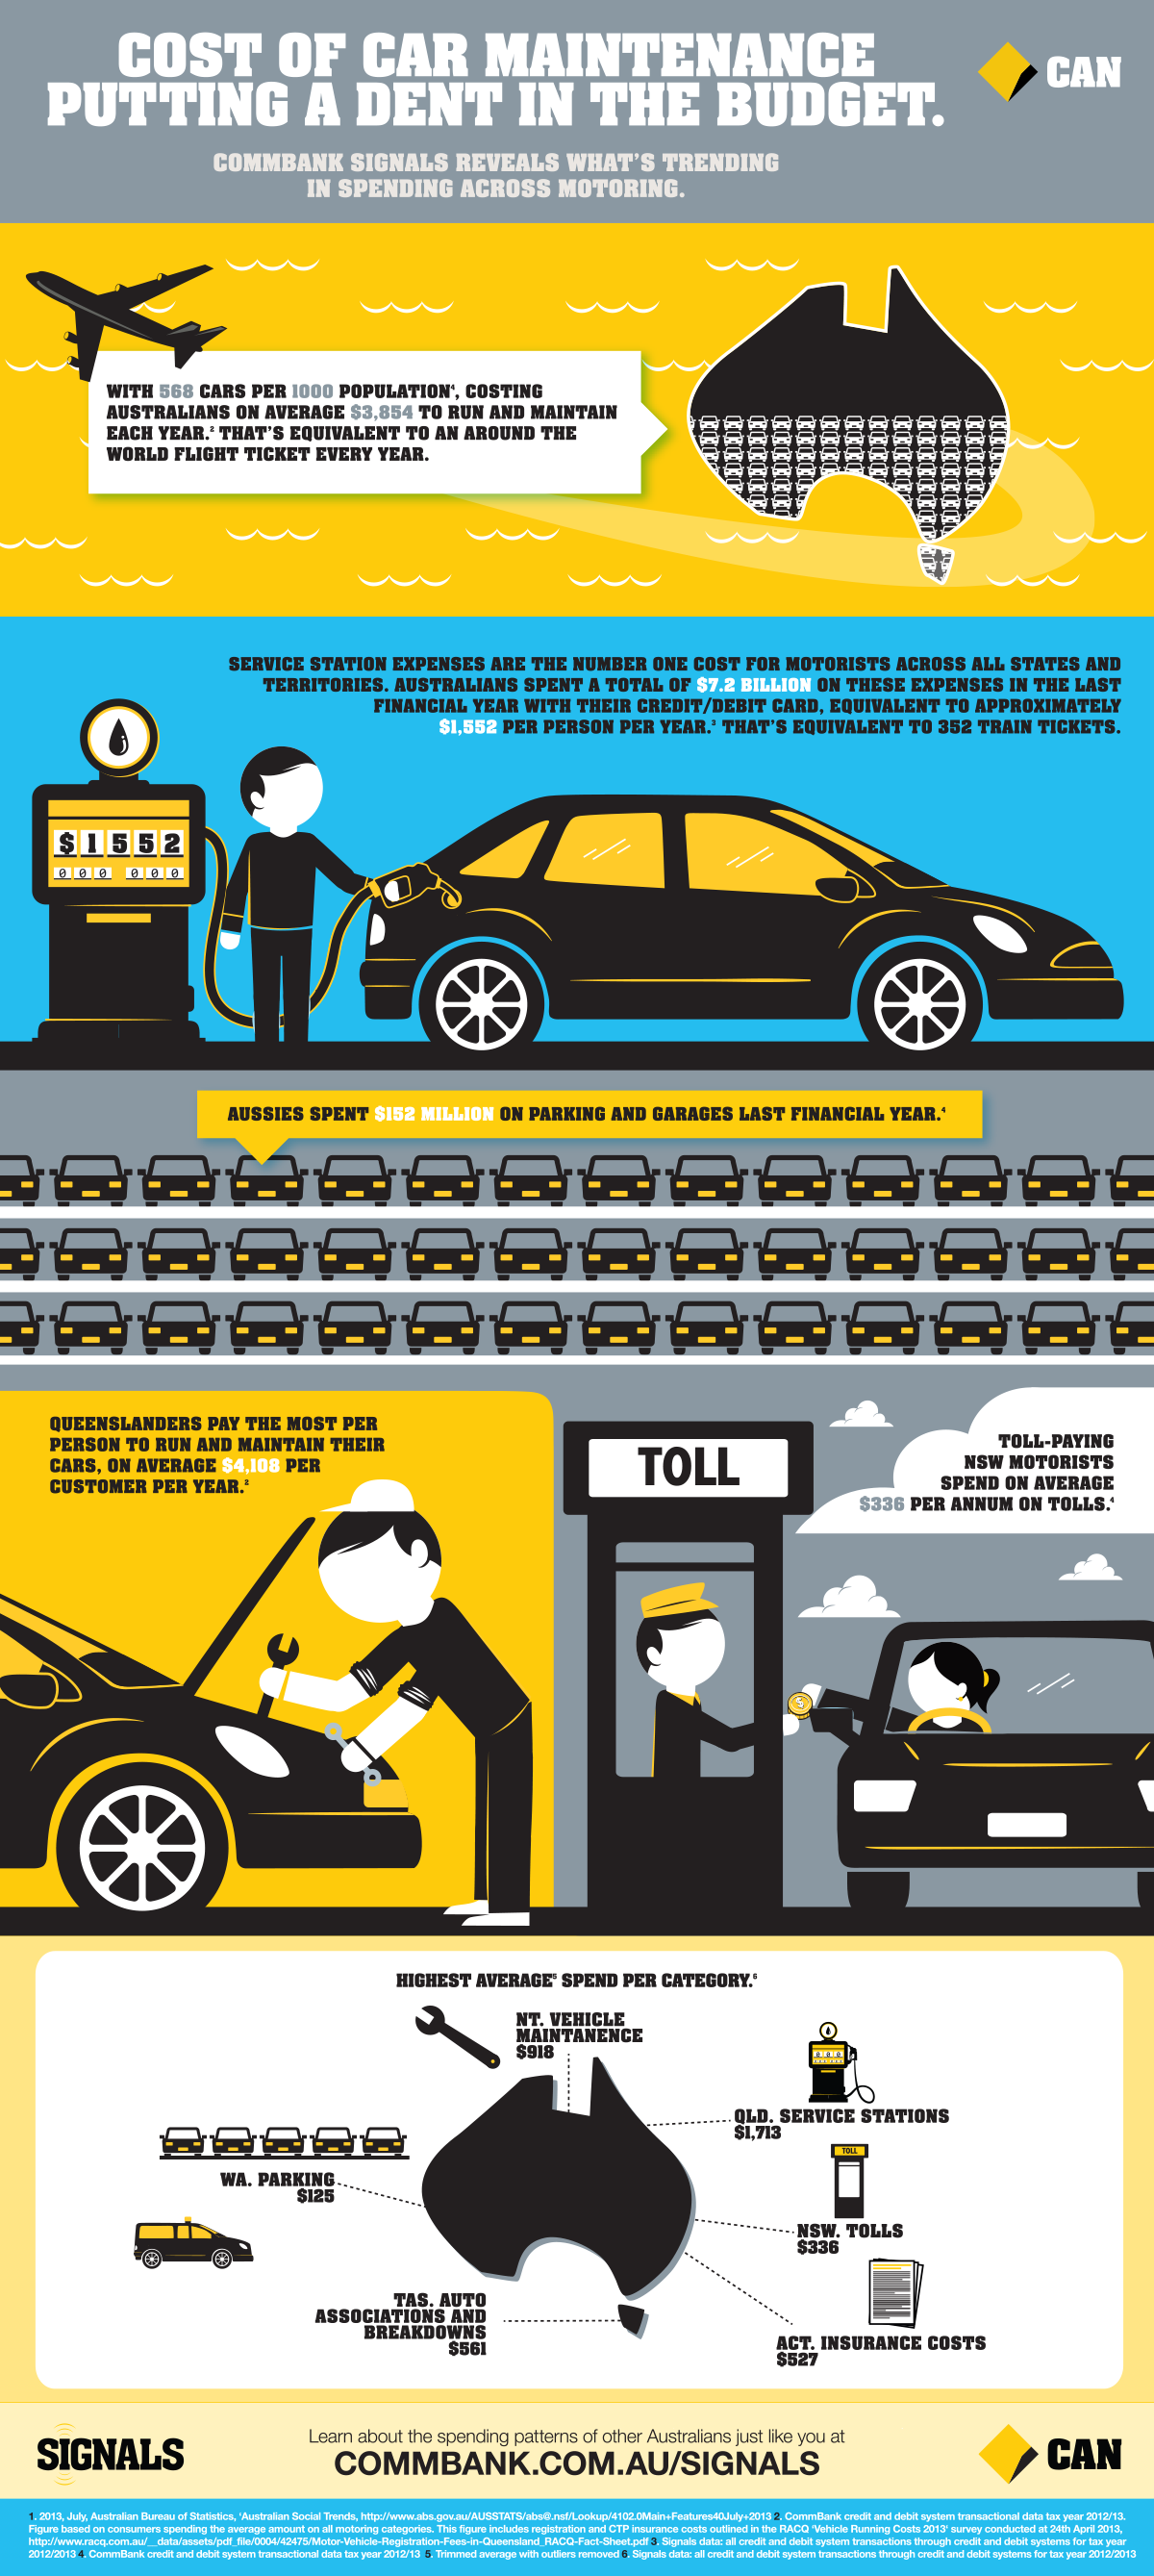 Cost of car maintenance cheap car insurance - infographic commonwealth - Cheap car insurance and ramblings of a car-loving mother